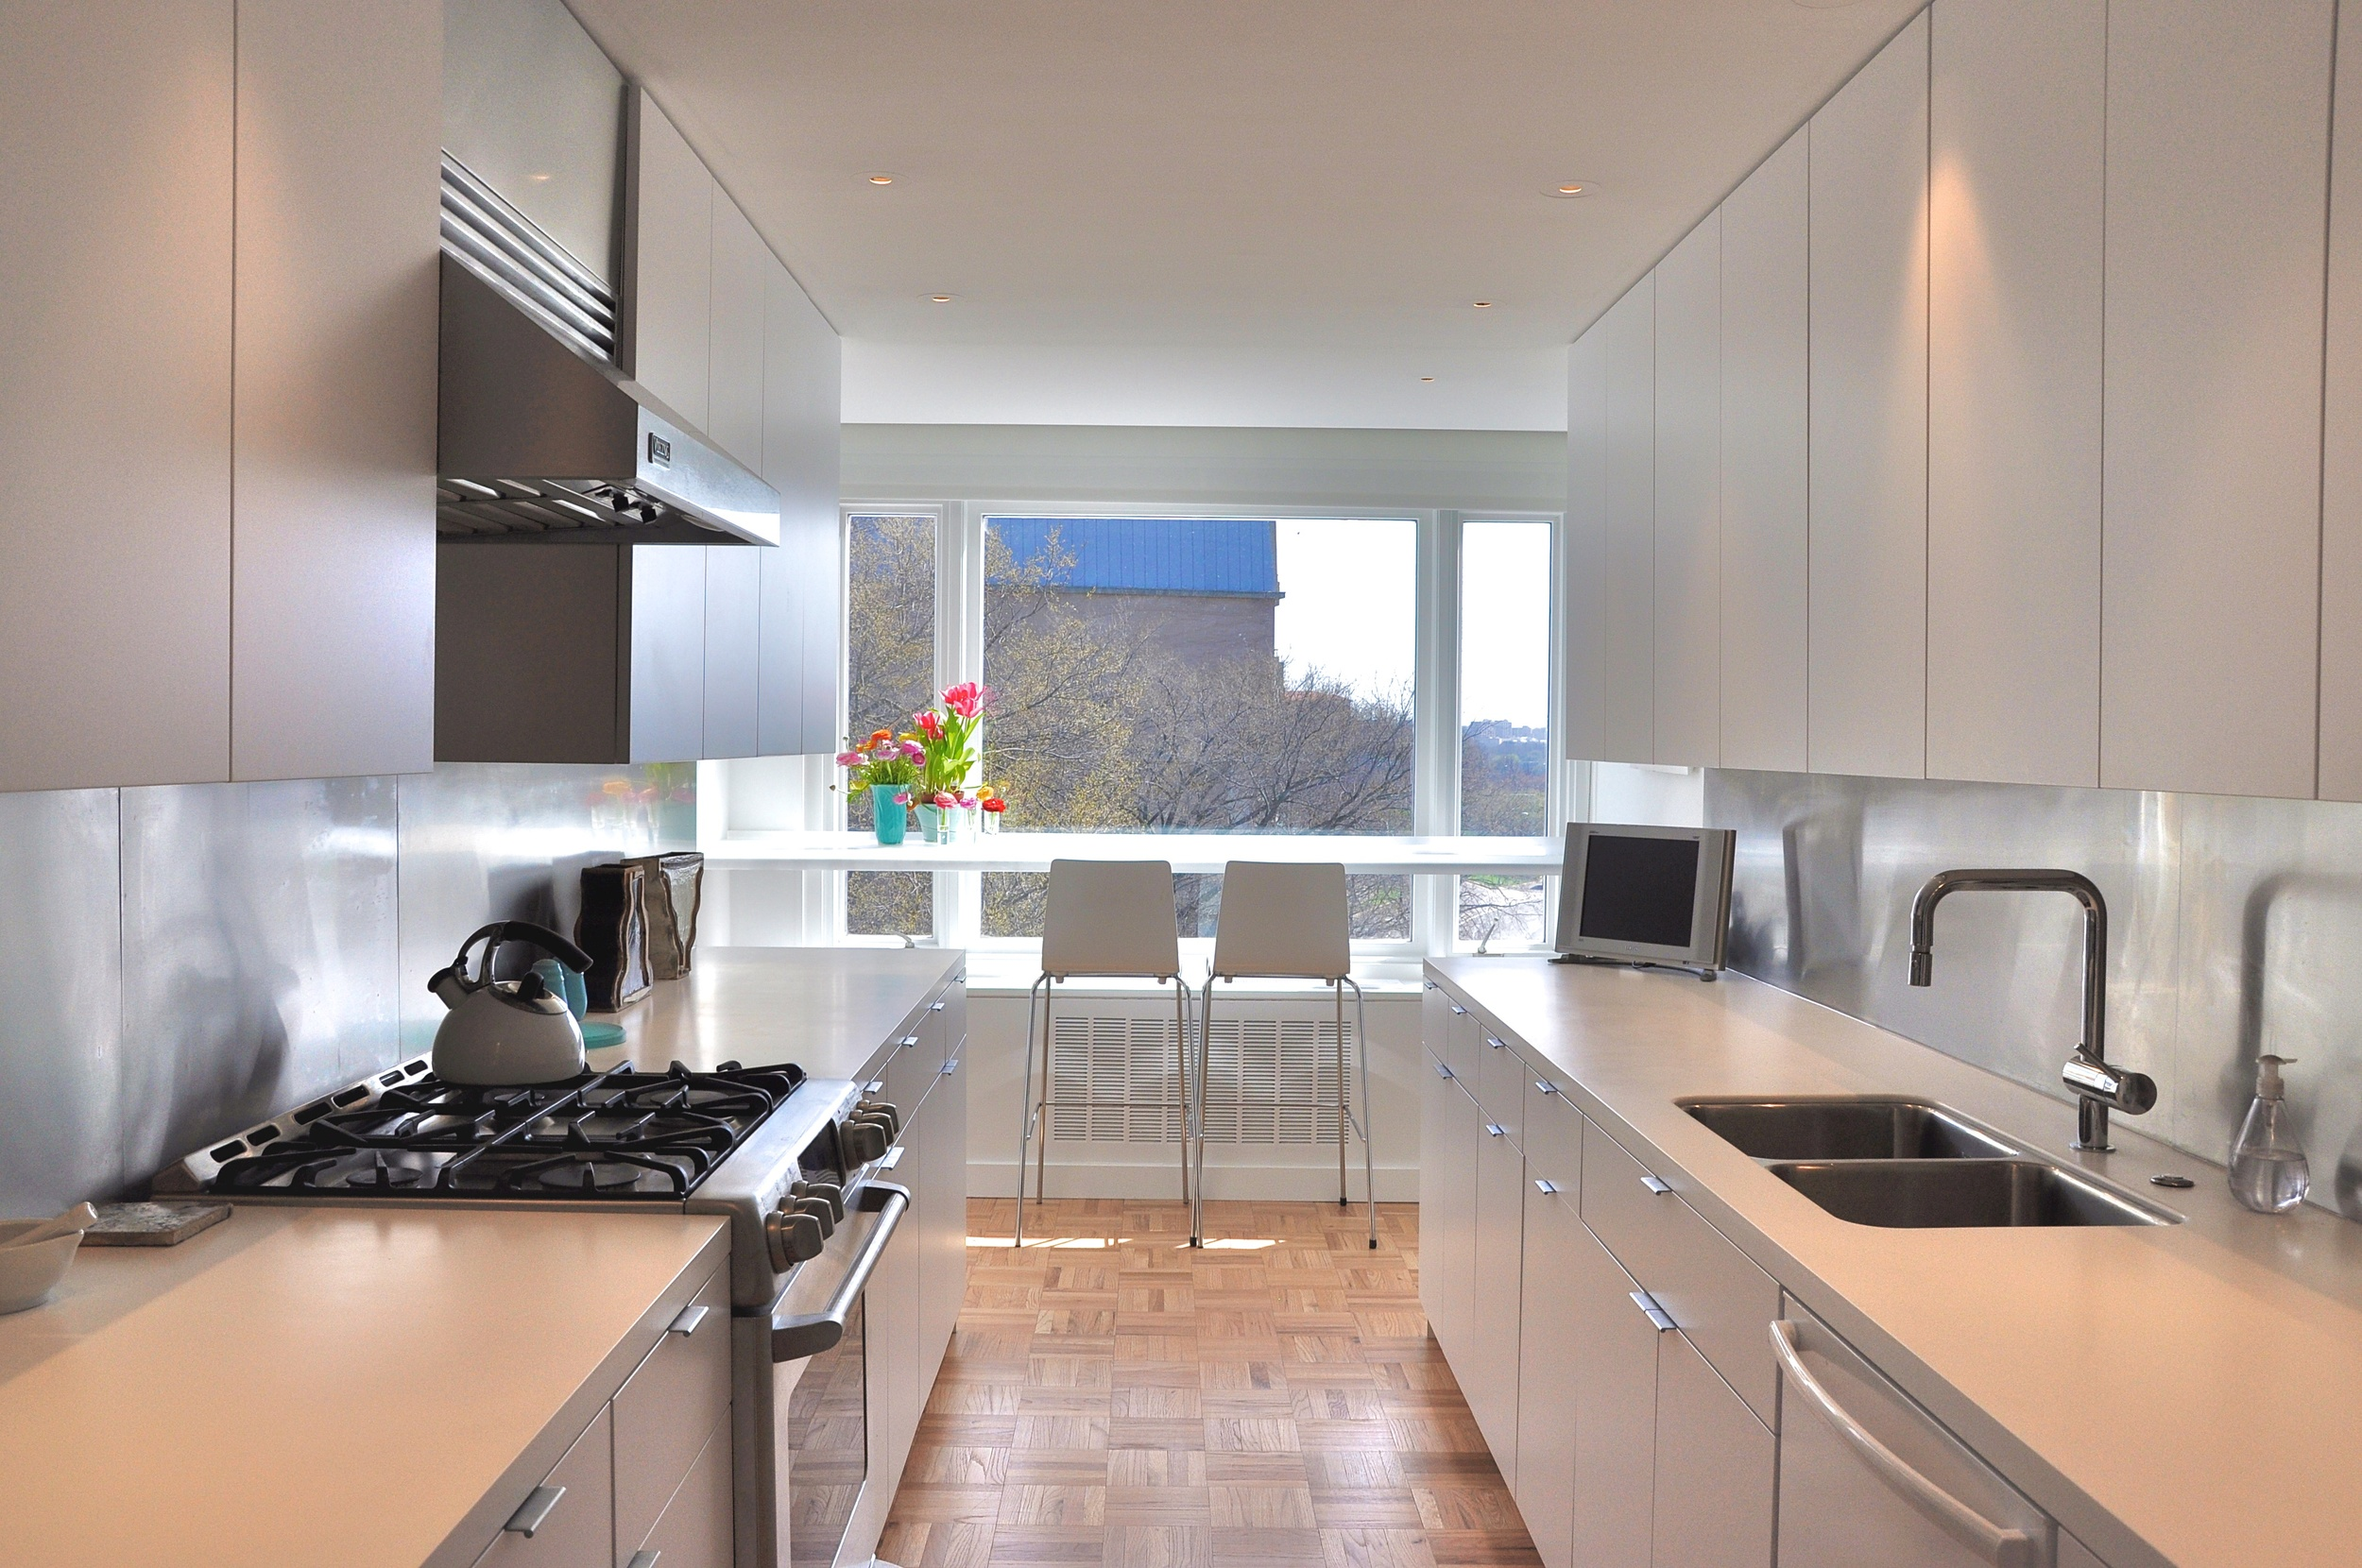 A cool, minimalist kitchen in an apartment in Washington and translucent counter over looking the avenue.